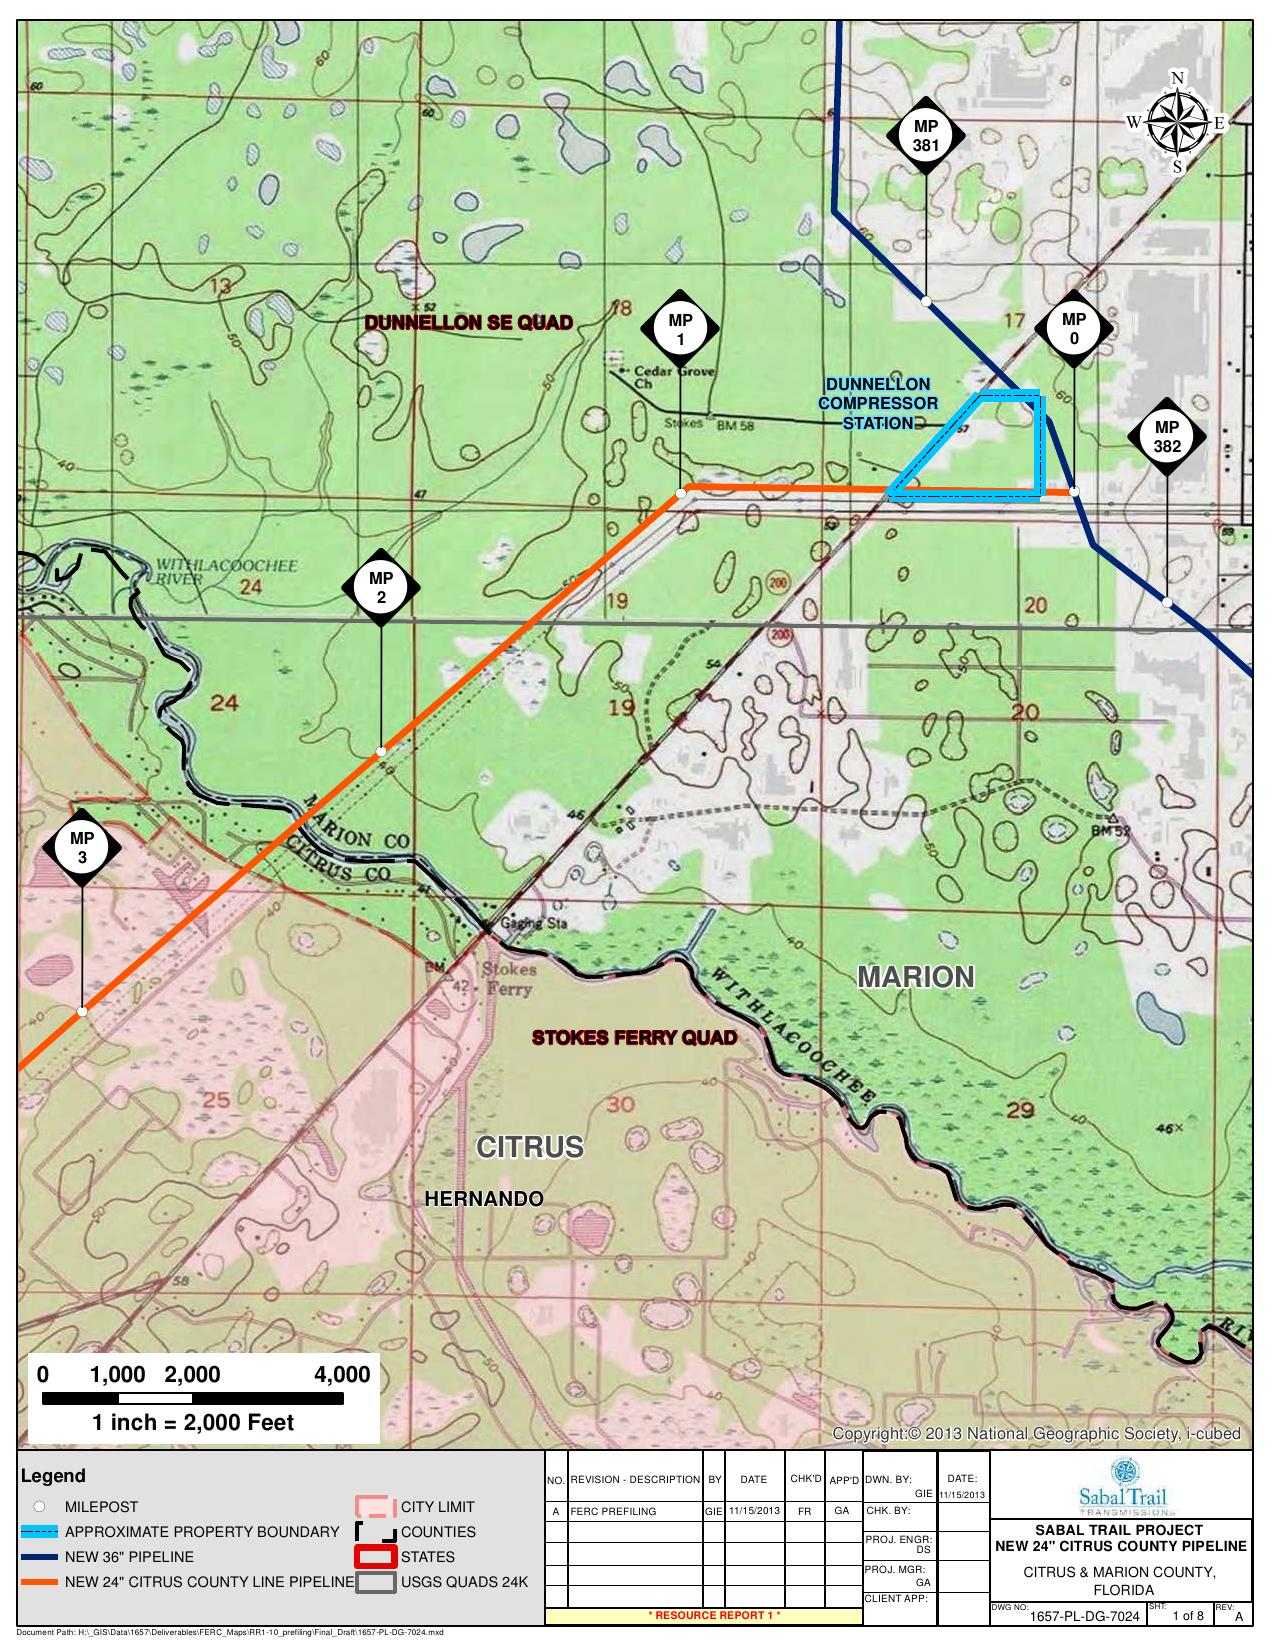 Hernando, Withlacoochee River, Dunnellon Compressor Station ... on suncoast parkway map, bradenton florida map, delaware florida map, withlacoochee river florida map, levy county florida map, pasco county florida map, saint johns county florida map, brevard county florida map, clay county florida map, hernando county map, st. johns river florida map, polk county florida map, west coast florida airports map, hernando florida map, lafayette county florida map, homosassa river florida map, lecanto florida map, bay county fl section map, winter park florida map, city island florida map,